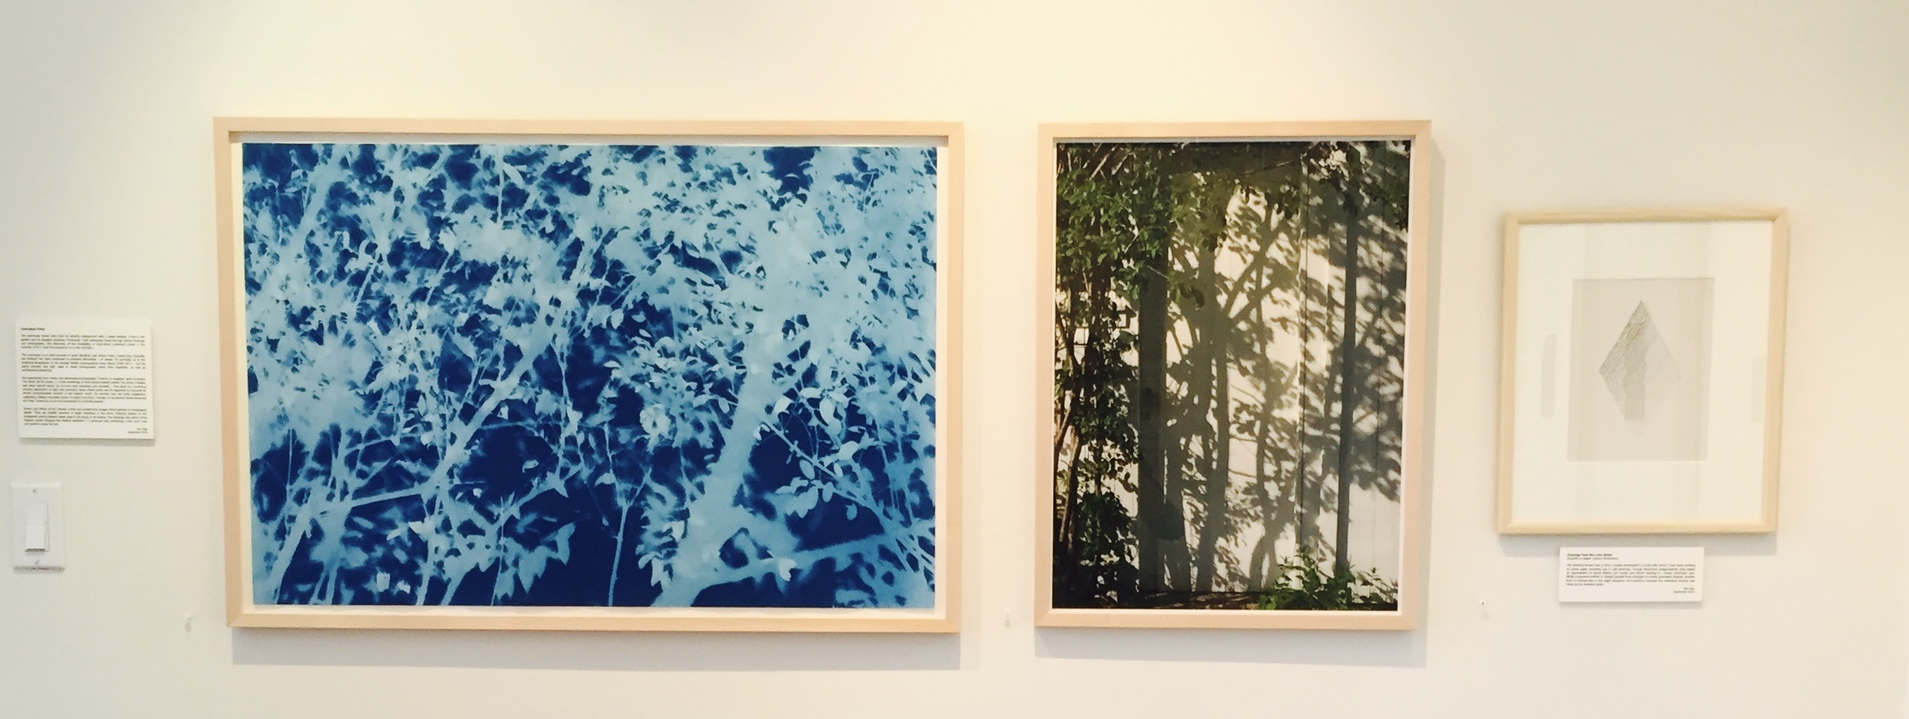 Jane Deering Gallery True Blue, and Black | Alternative Photography : Tom Fels & Gail Pine cyanotype . digital photograph . graphite drawing